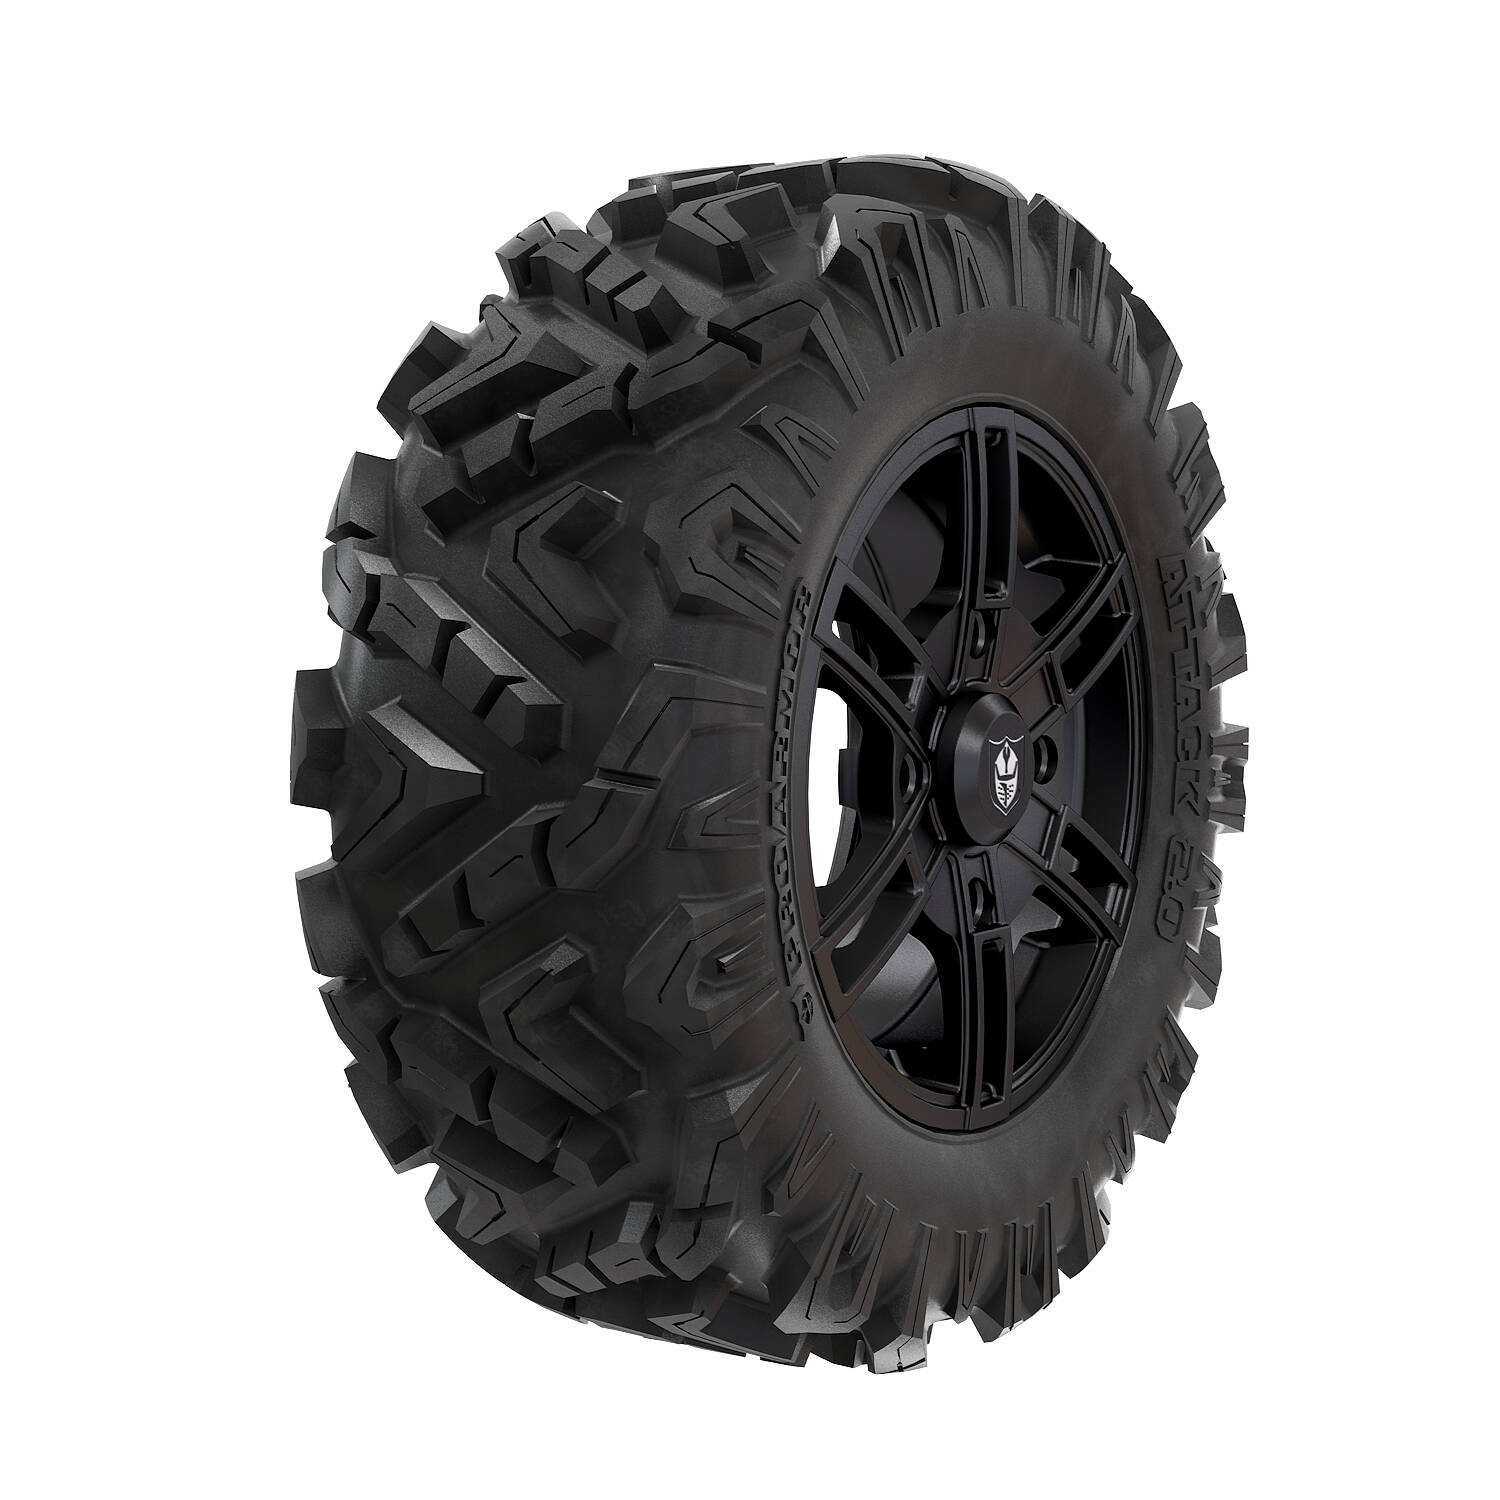 Pro Armor® Wheel & Tire Set: Wyde - Matte Black & Attack 2.0 - 28""